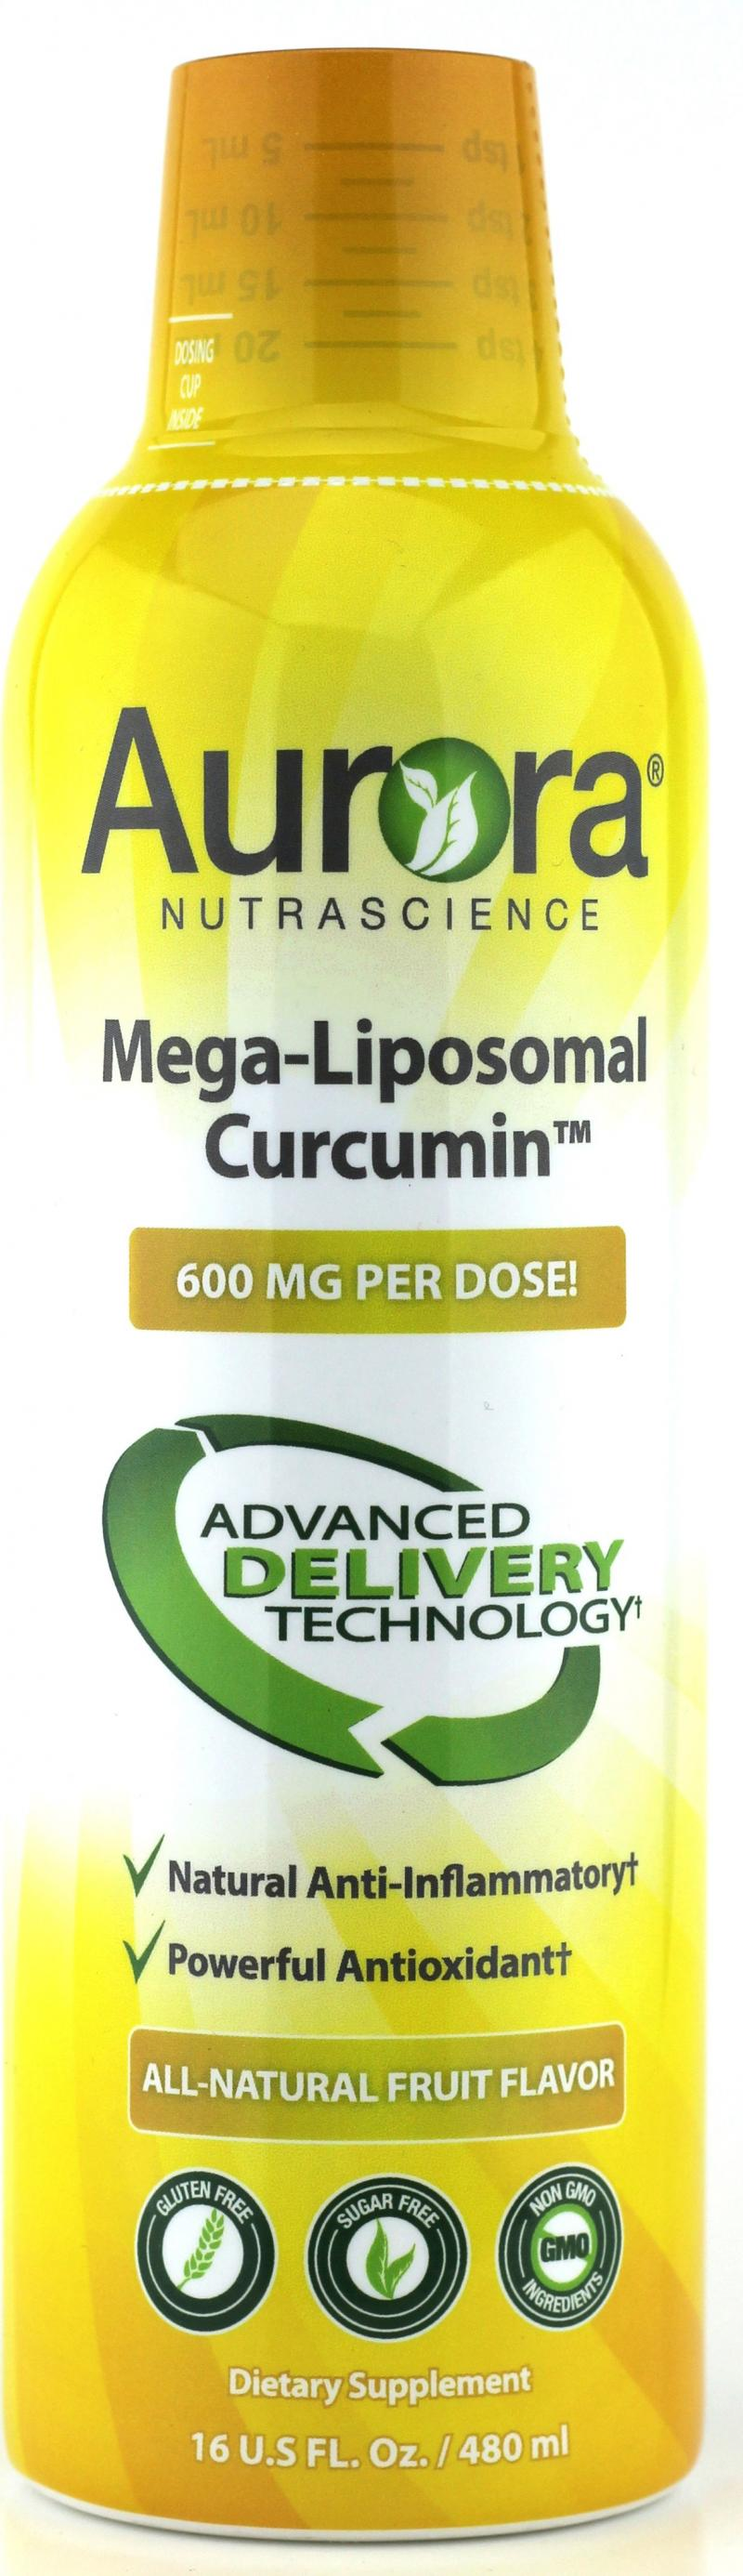 Mega-liposomal Curcumin Dietary Supplement